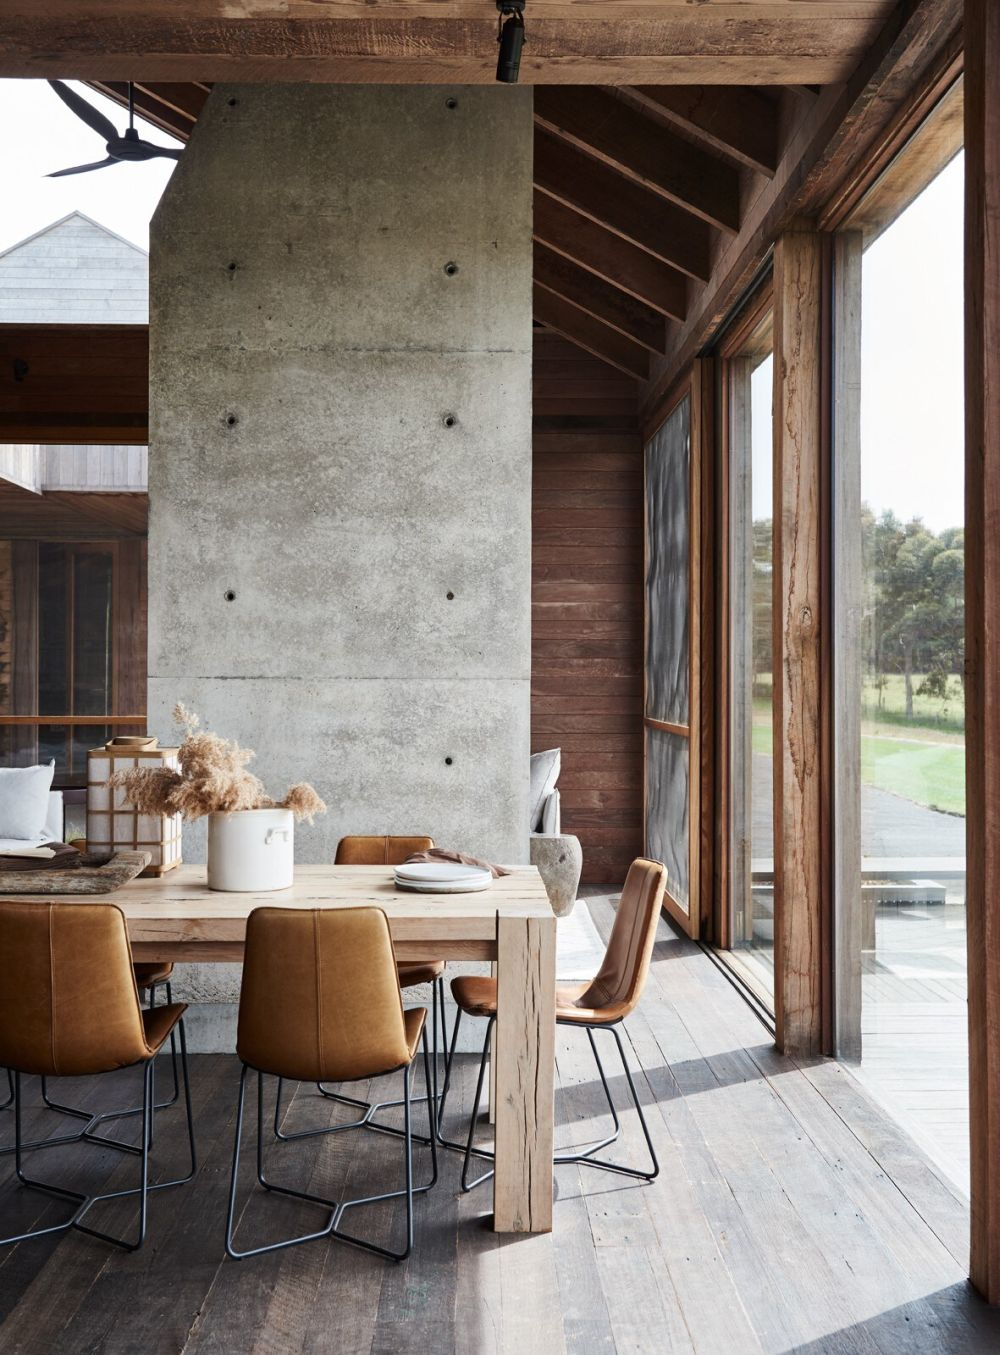 A concrete divider separates the sitting area from the rest of the floor plan